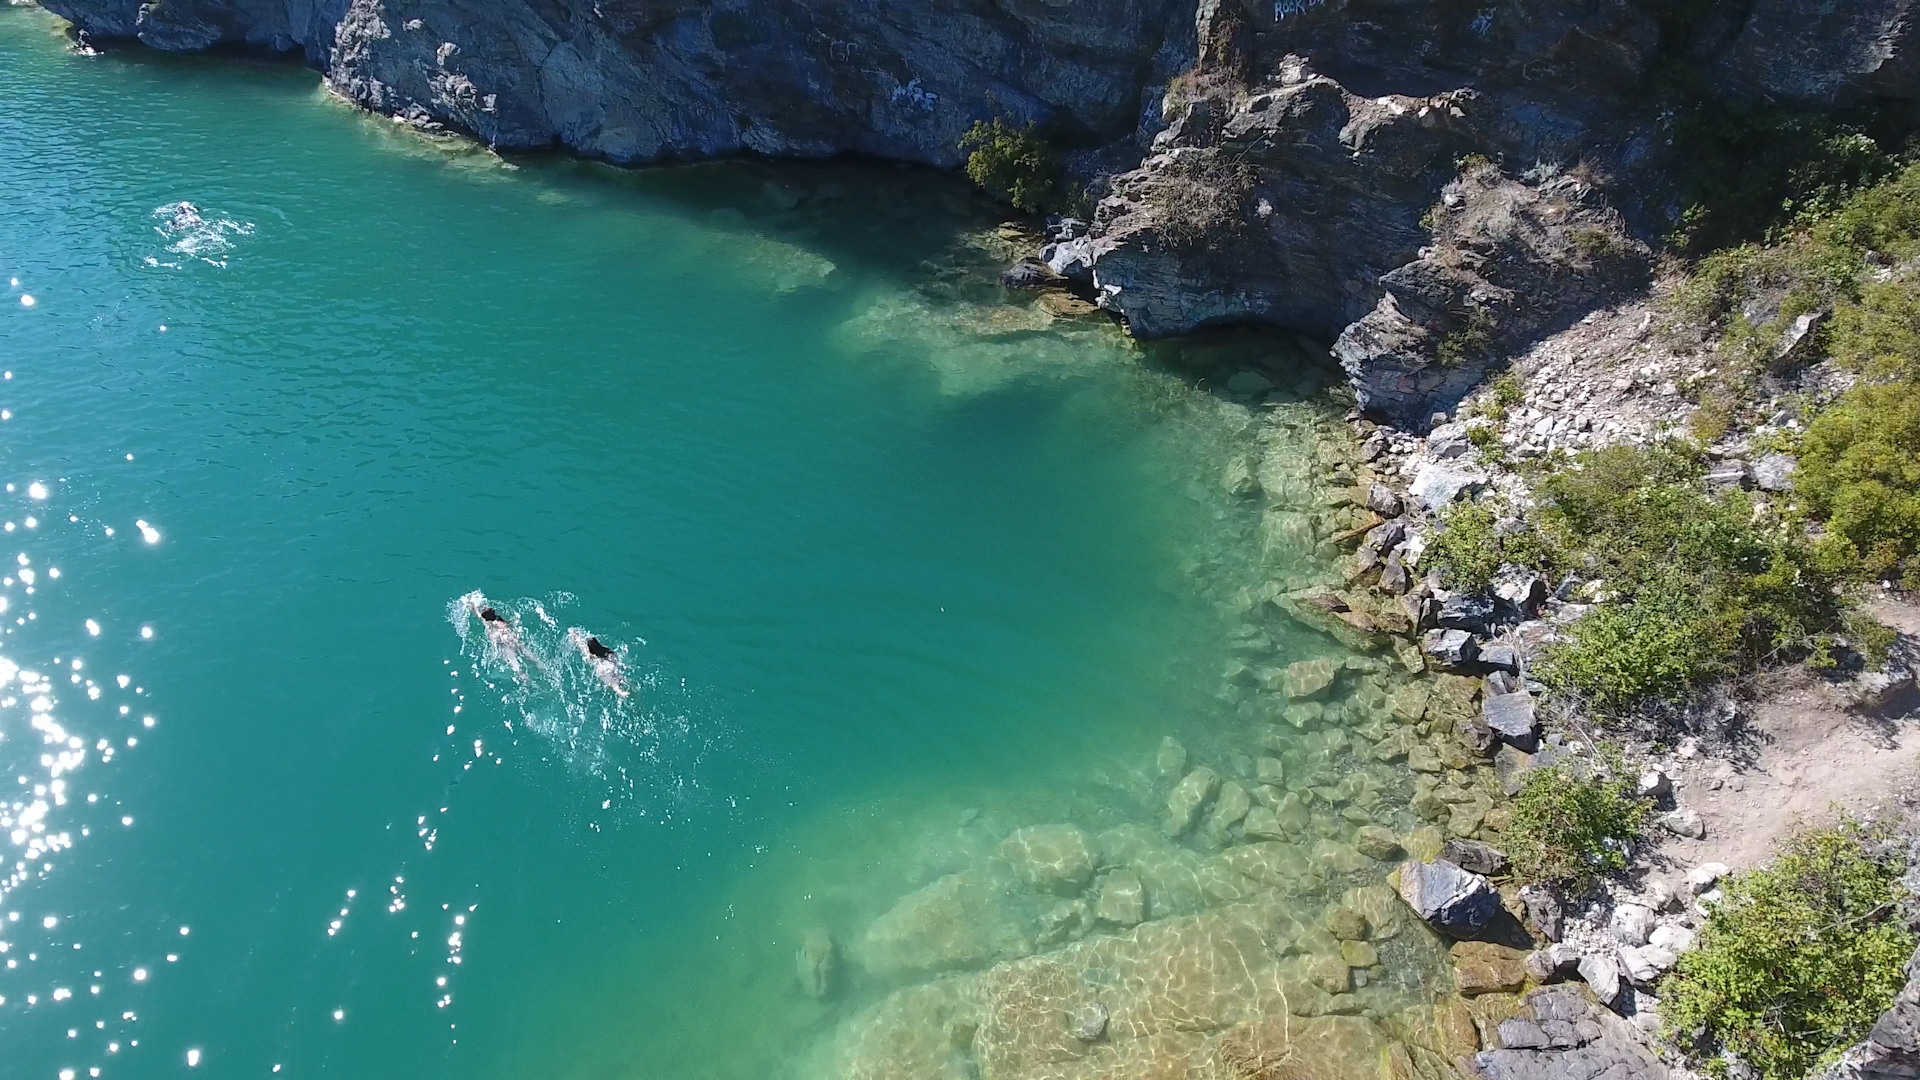 Kalamalka Lake Provincial Park - The Cliffs - Swimmers